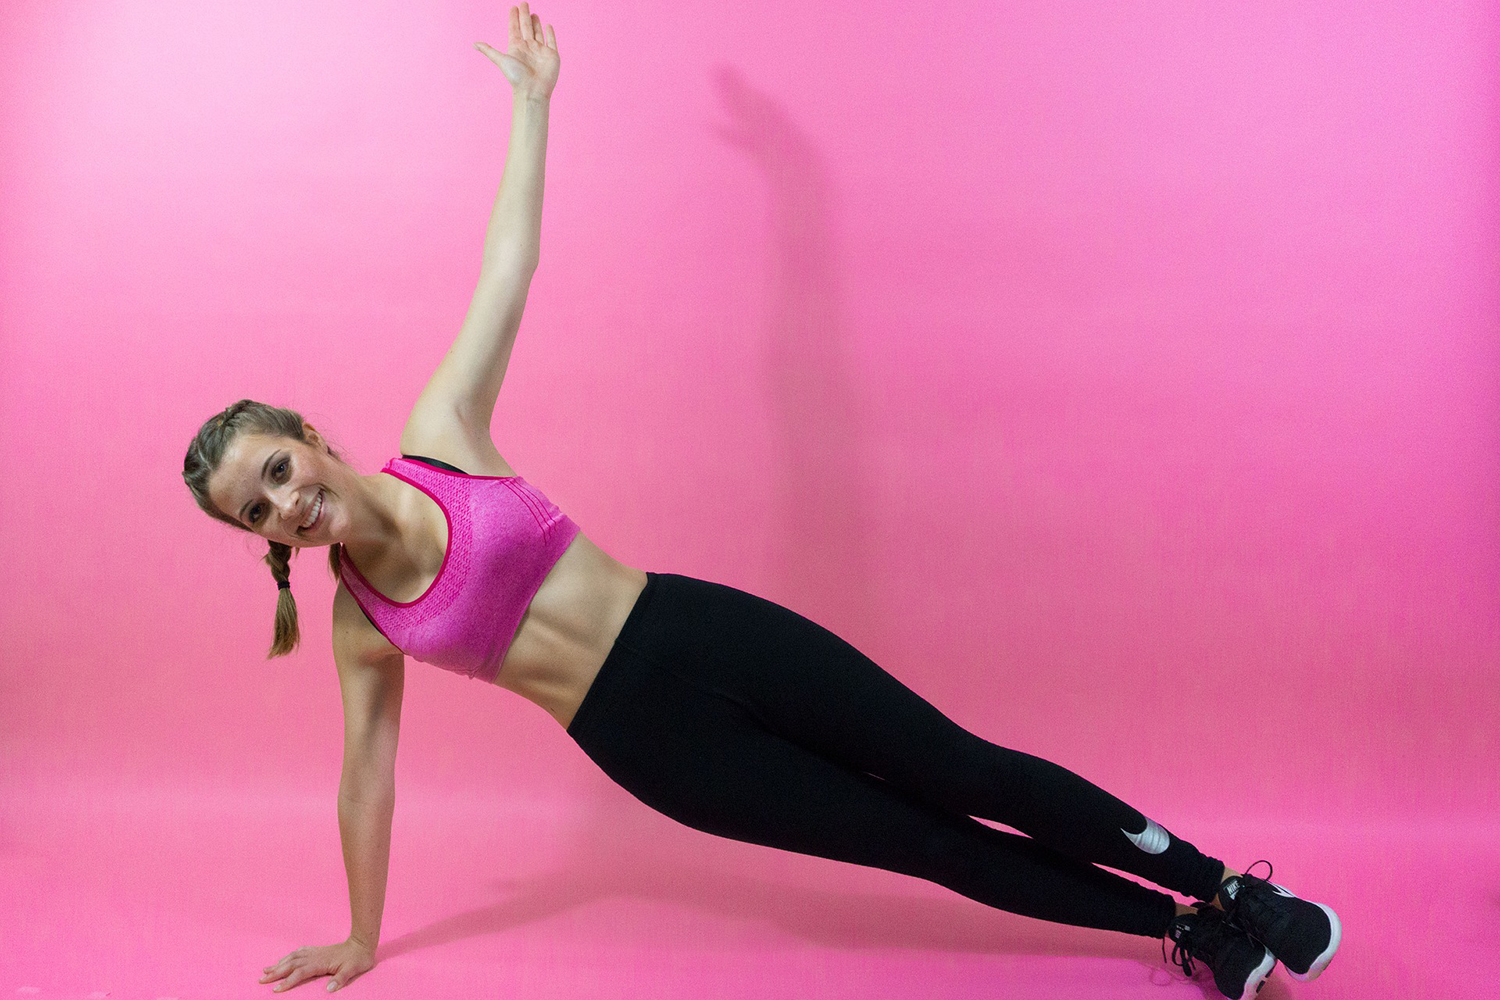 Athletic Woman Doing Side Plank With On Arm Raised